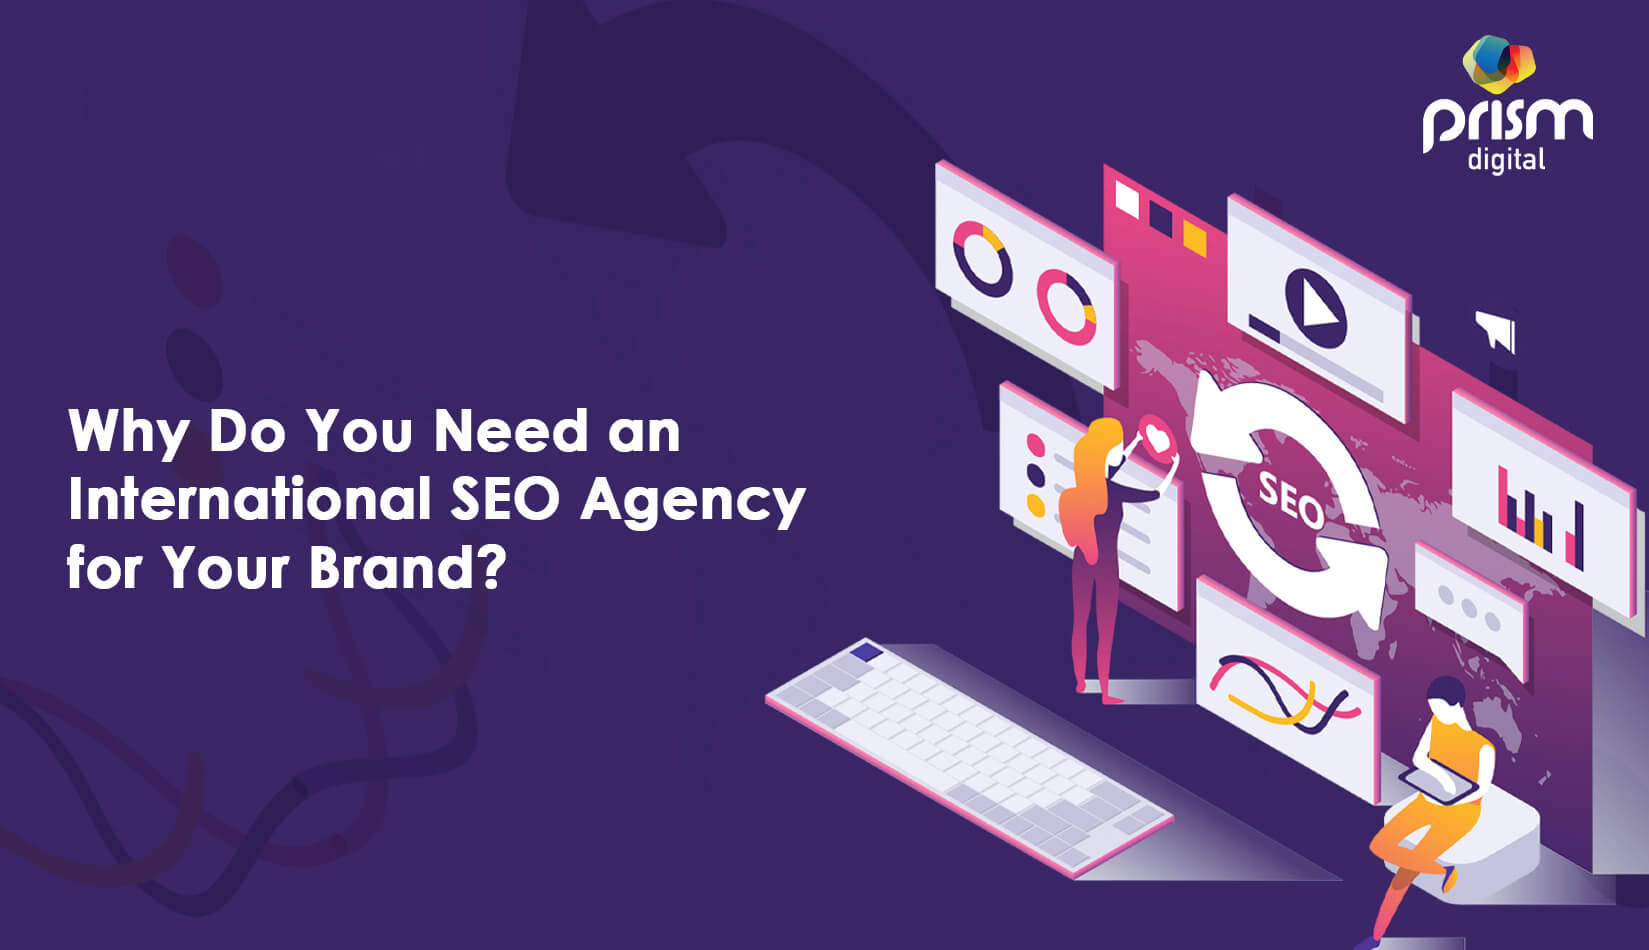 Why Do You Need An International SEO Agency For Your Brand